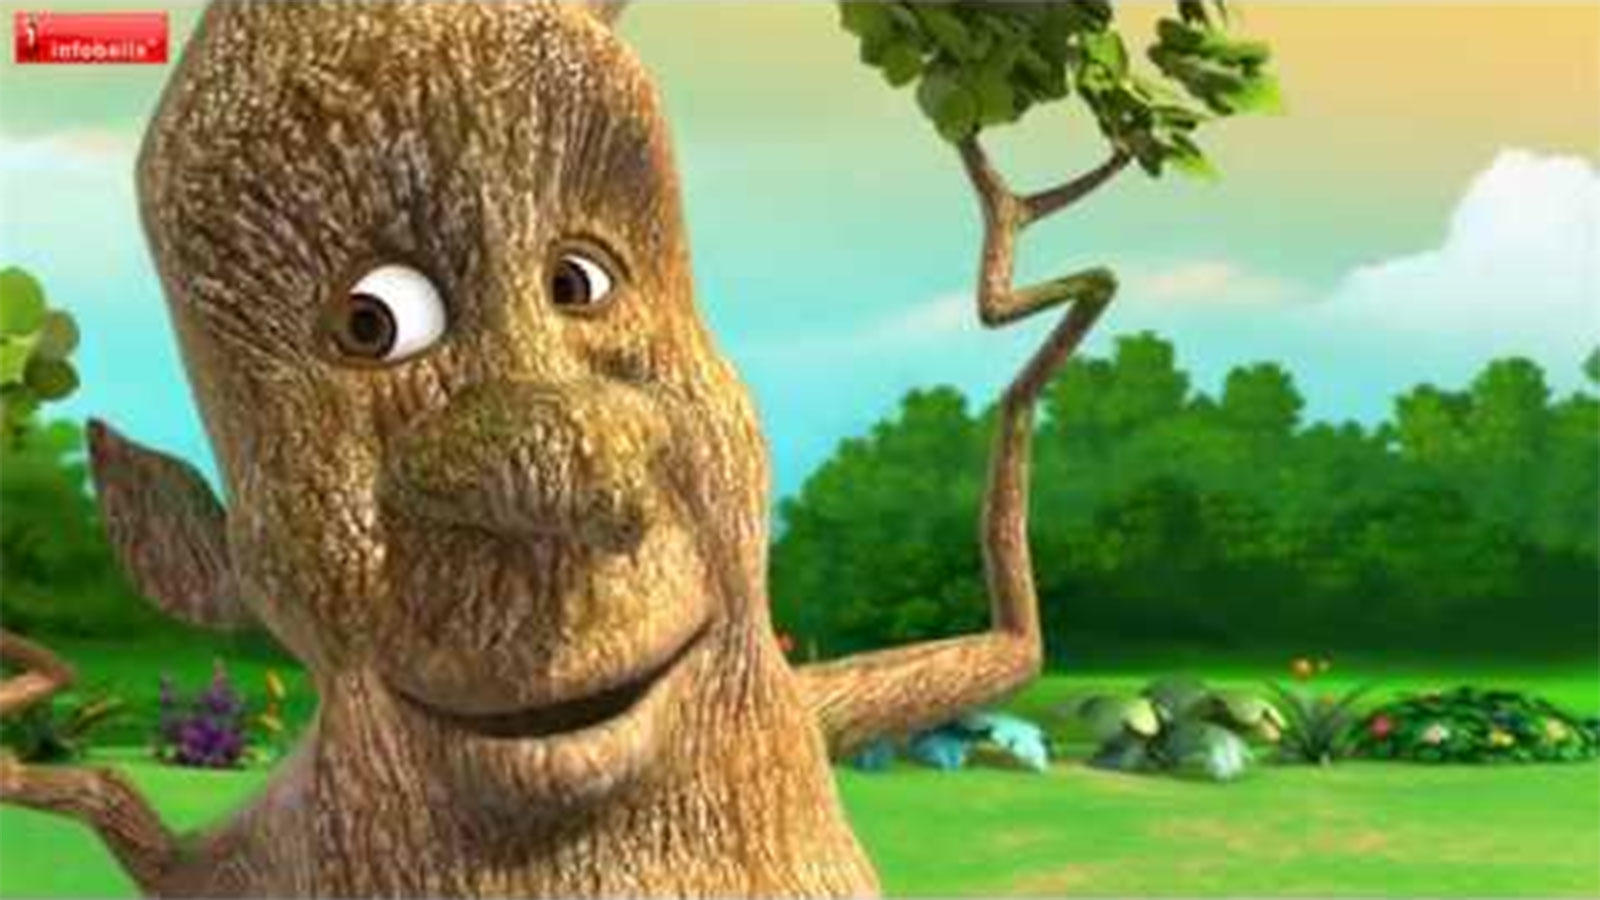 Popular Kids Songs And English Nursery Story The Ugly Tree For Kids Check Out Children S Nursery Rhymes Baby Songs Fairy Tales In English Entertainment Times Of India Videos Cartoon tropical tree and fern. popular kids songs and english nursery story the ugly tree for kids check out children s nursery rhymes baby songs fairy tales in english